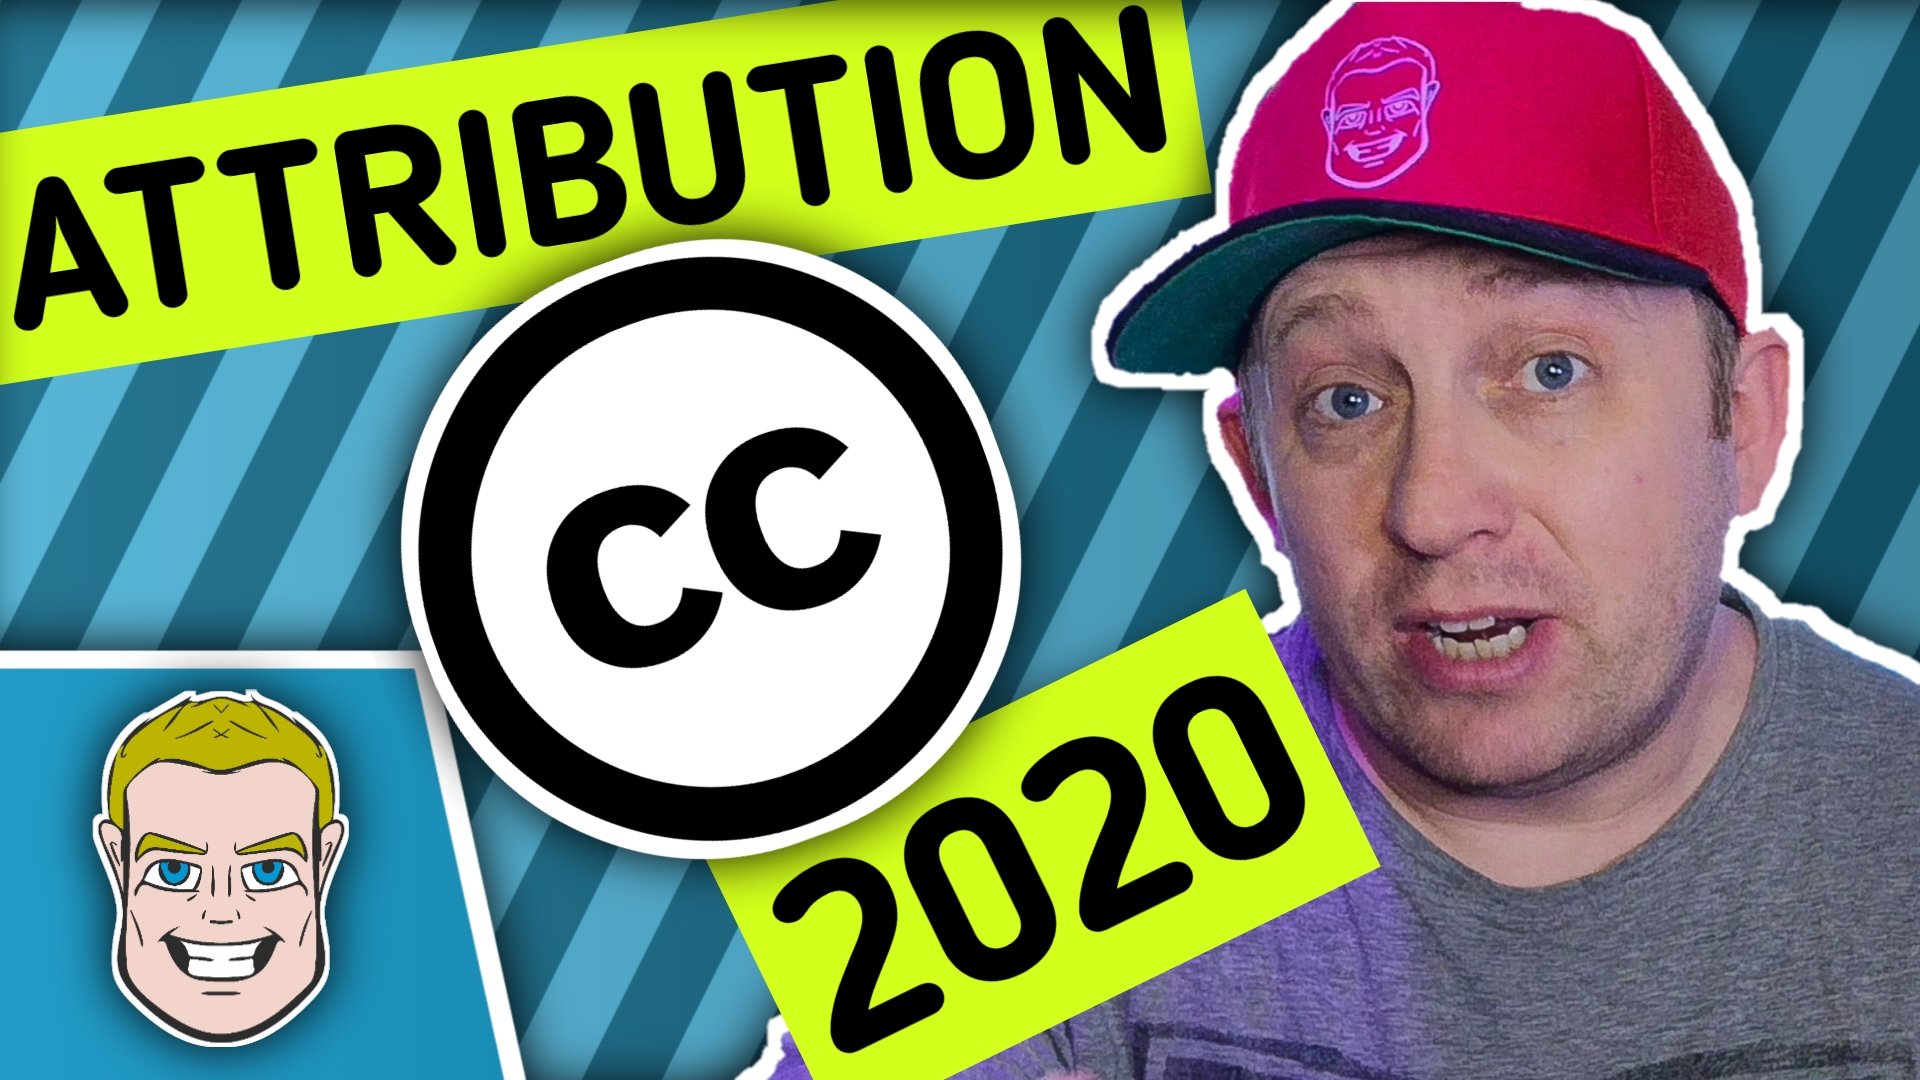 How To Attribute Creative Commons Music 2020